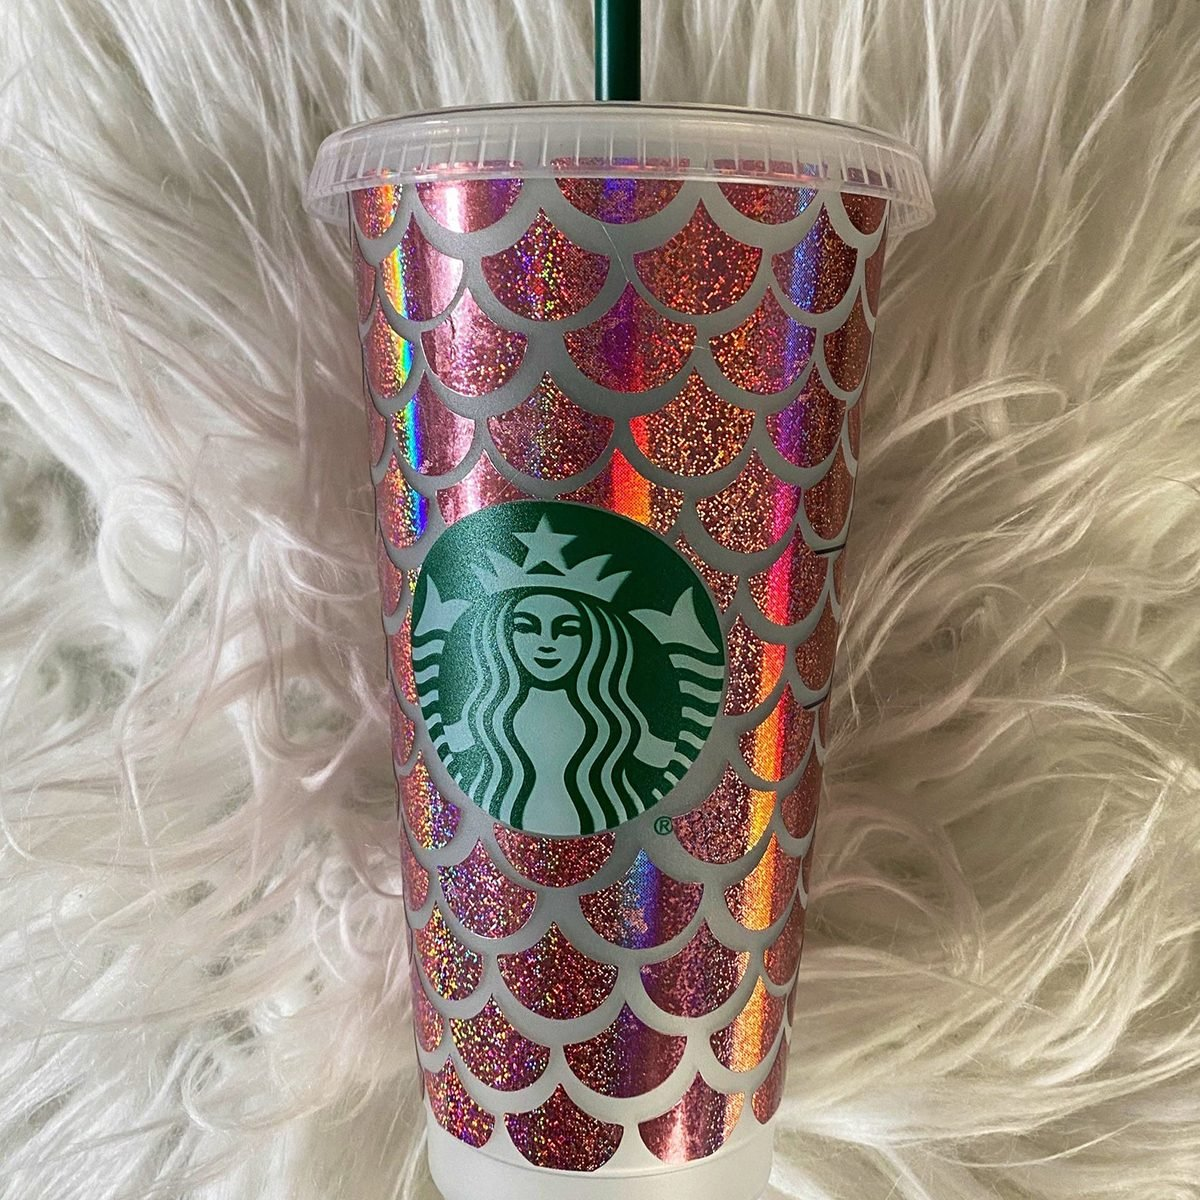 Mermaid Starbucks Cold Cup| Personalized| Full Wrap|Gift for Ice Coffee Lover|Birthday Gift for Best Friend